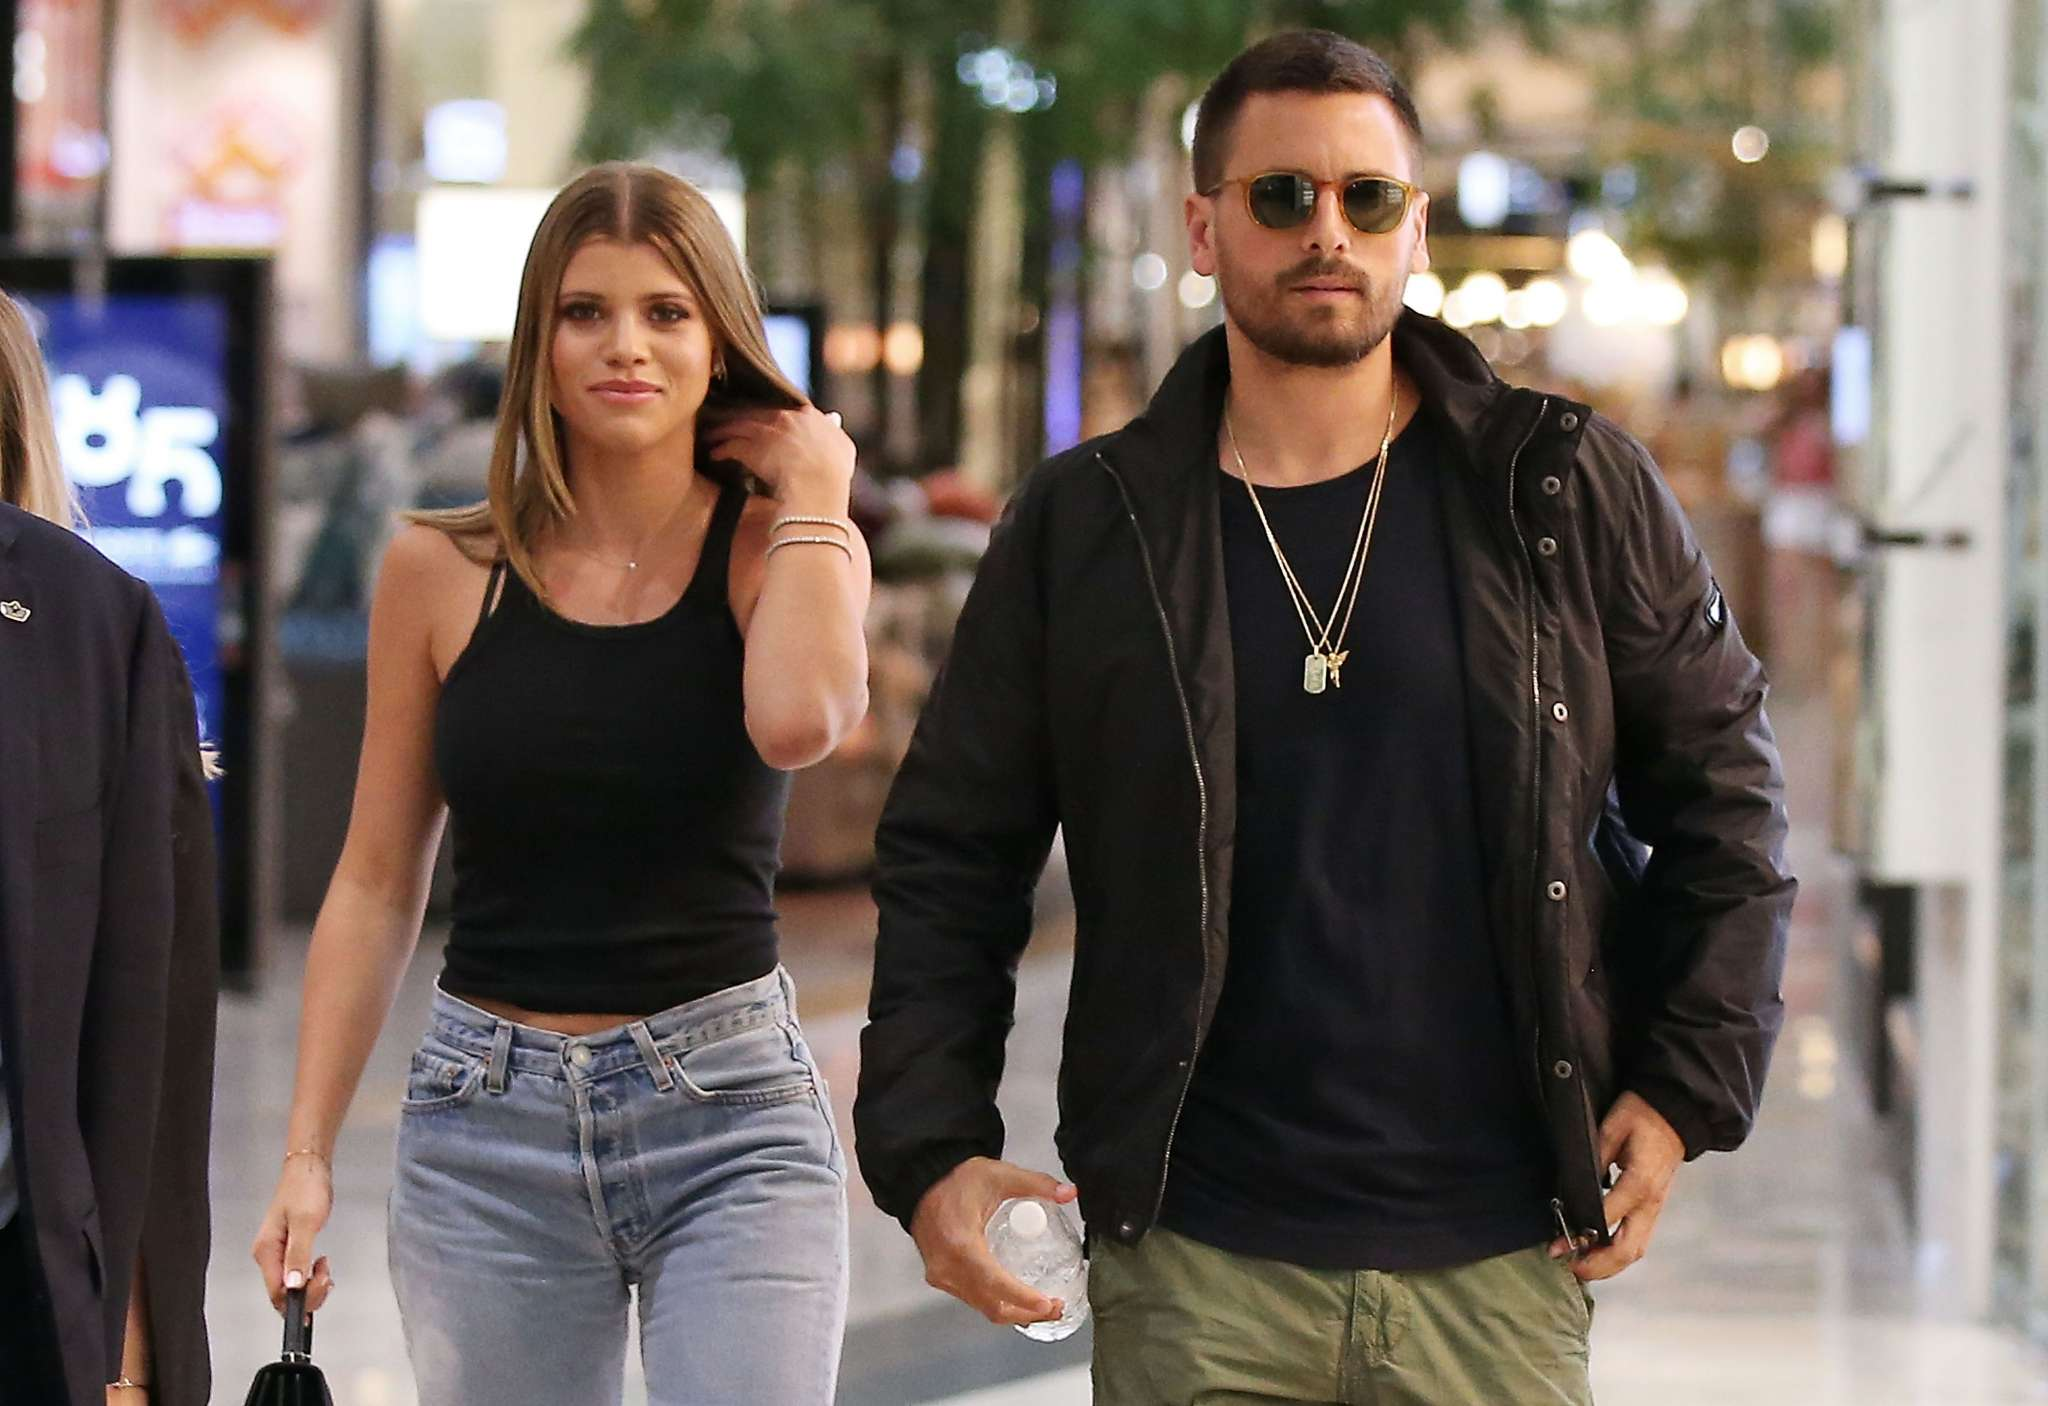 Scott Disick Sparks Engagement Rumors After Being Spotted At The Jewelry Store - Will He Propose To Sofia Richie?